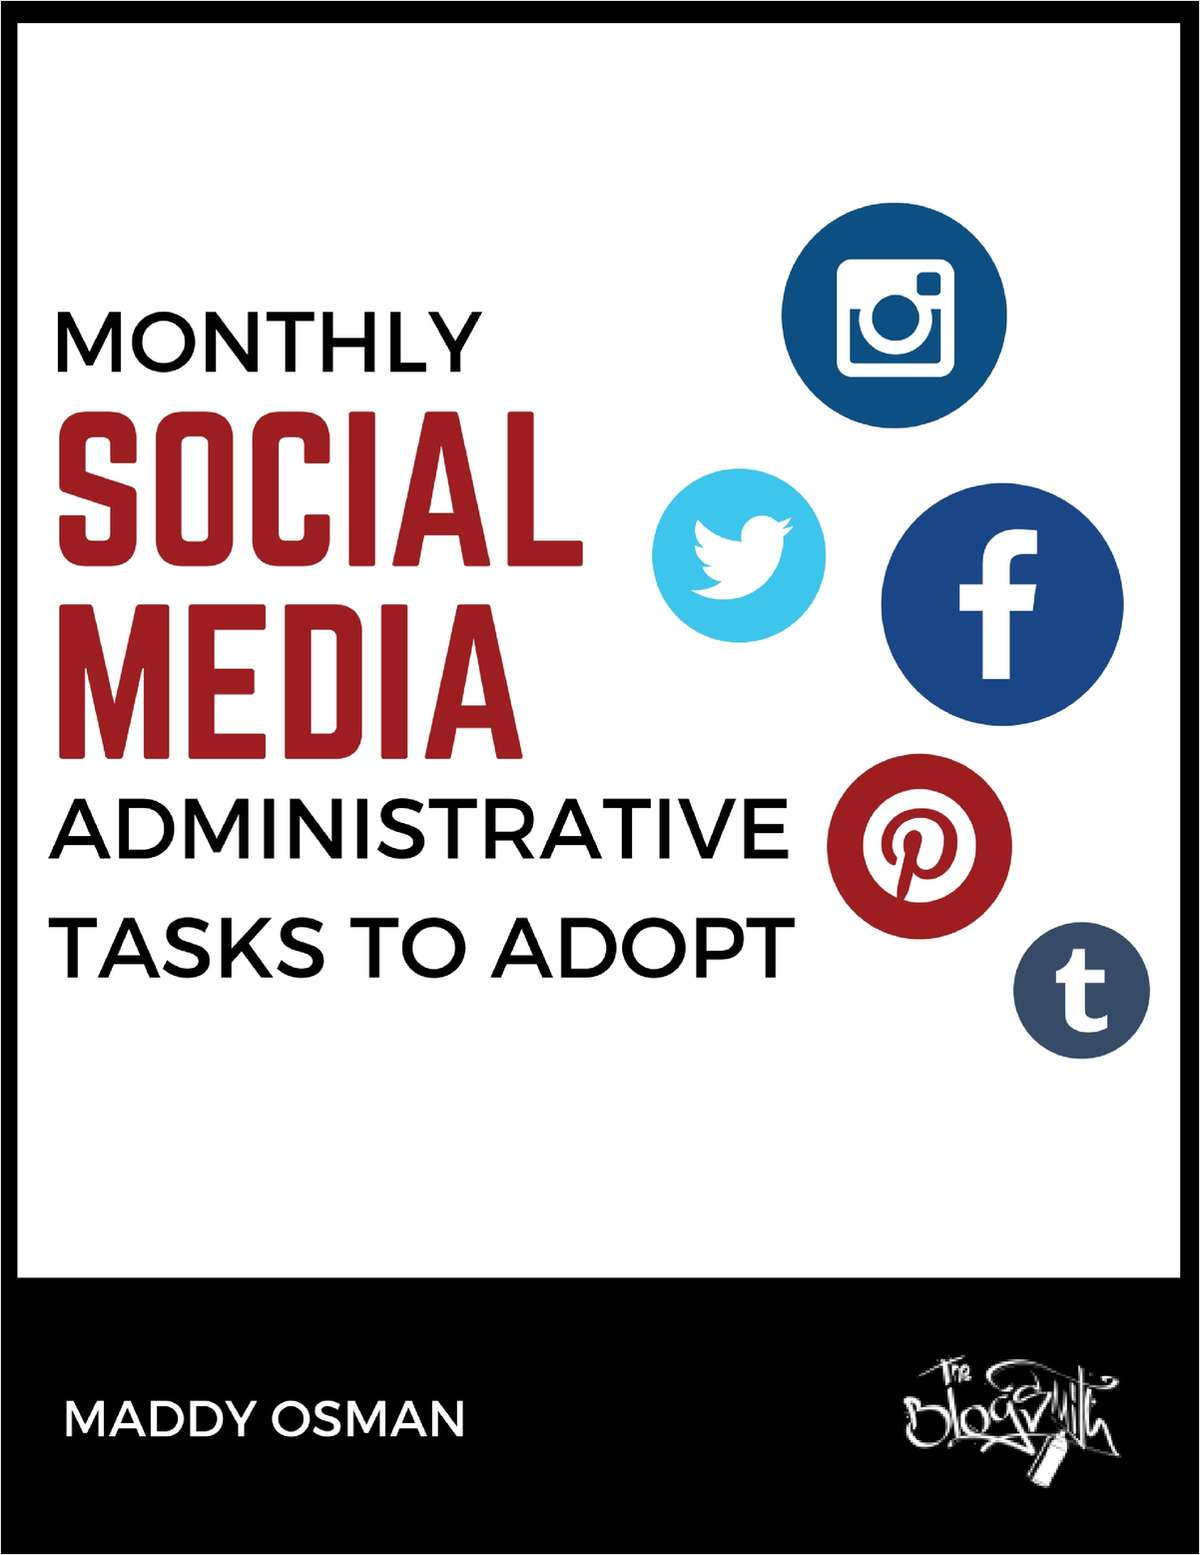 Monthly Social Media Administrative Tasks to Adopt